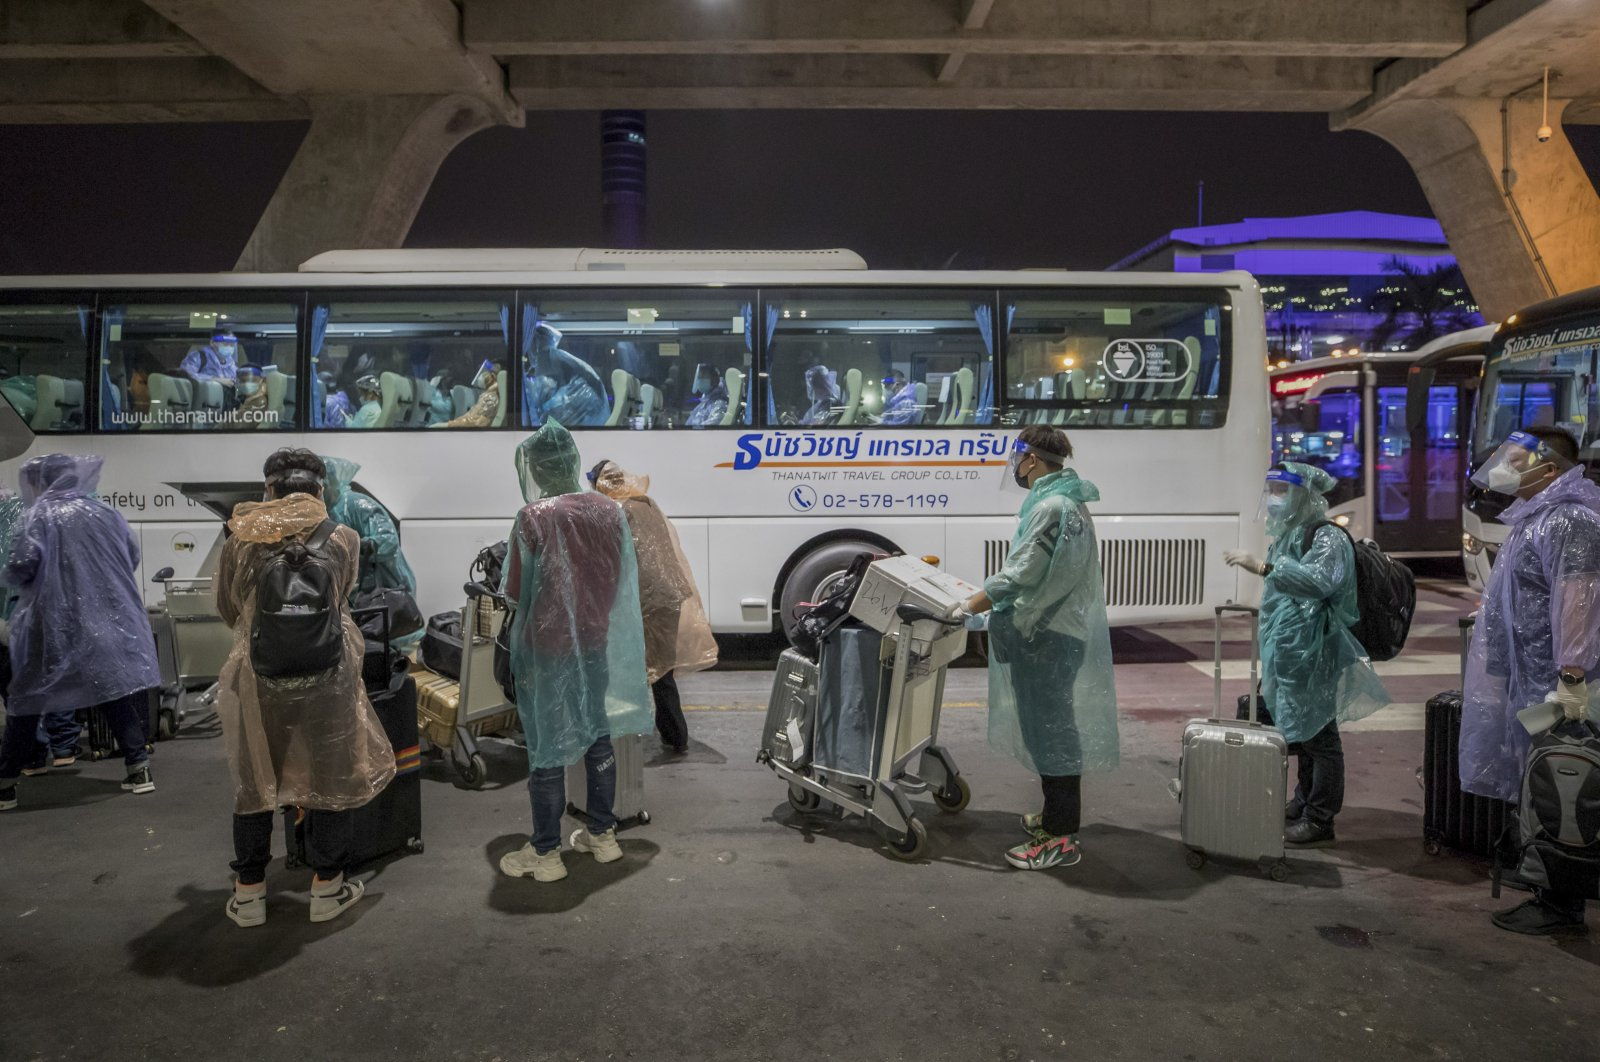 Chinese tourists from Shanghai who arrived on special tourist visas, board a bus at Suvarnabhumi airport in Bangkok, Thailand, Oct. 20, 2020. (AP Photo)